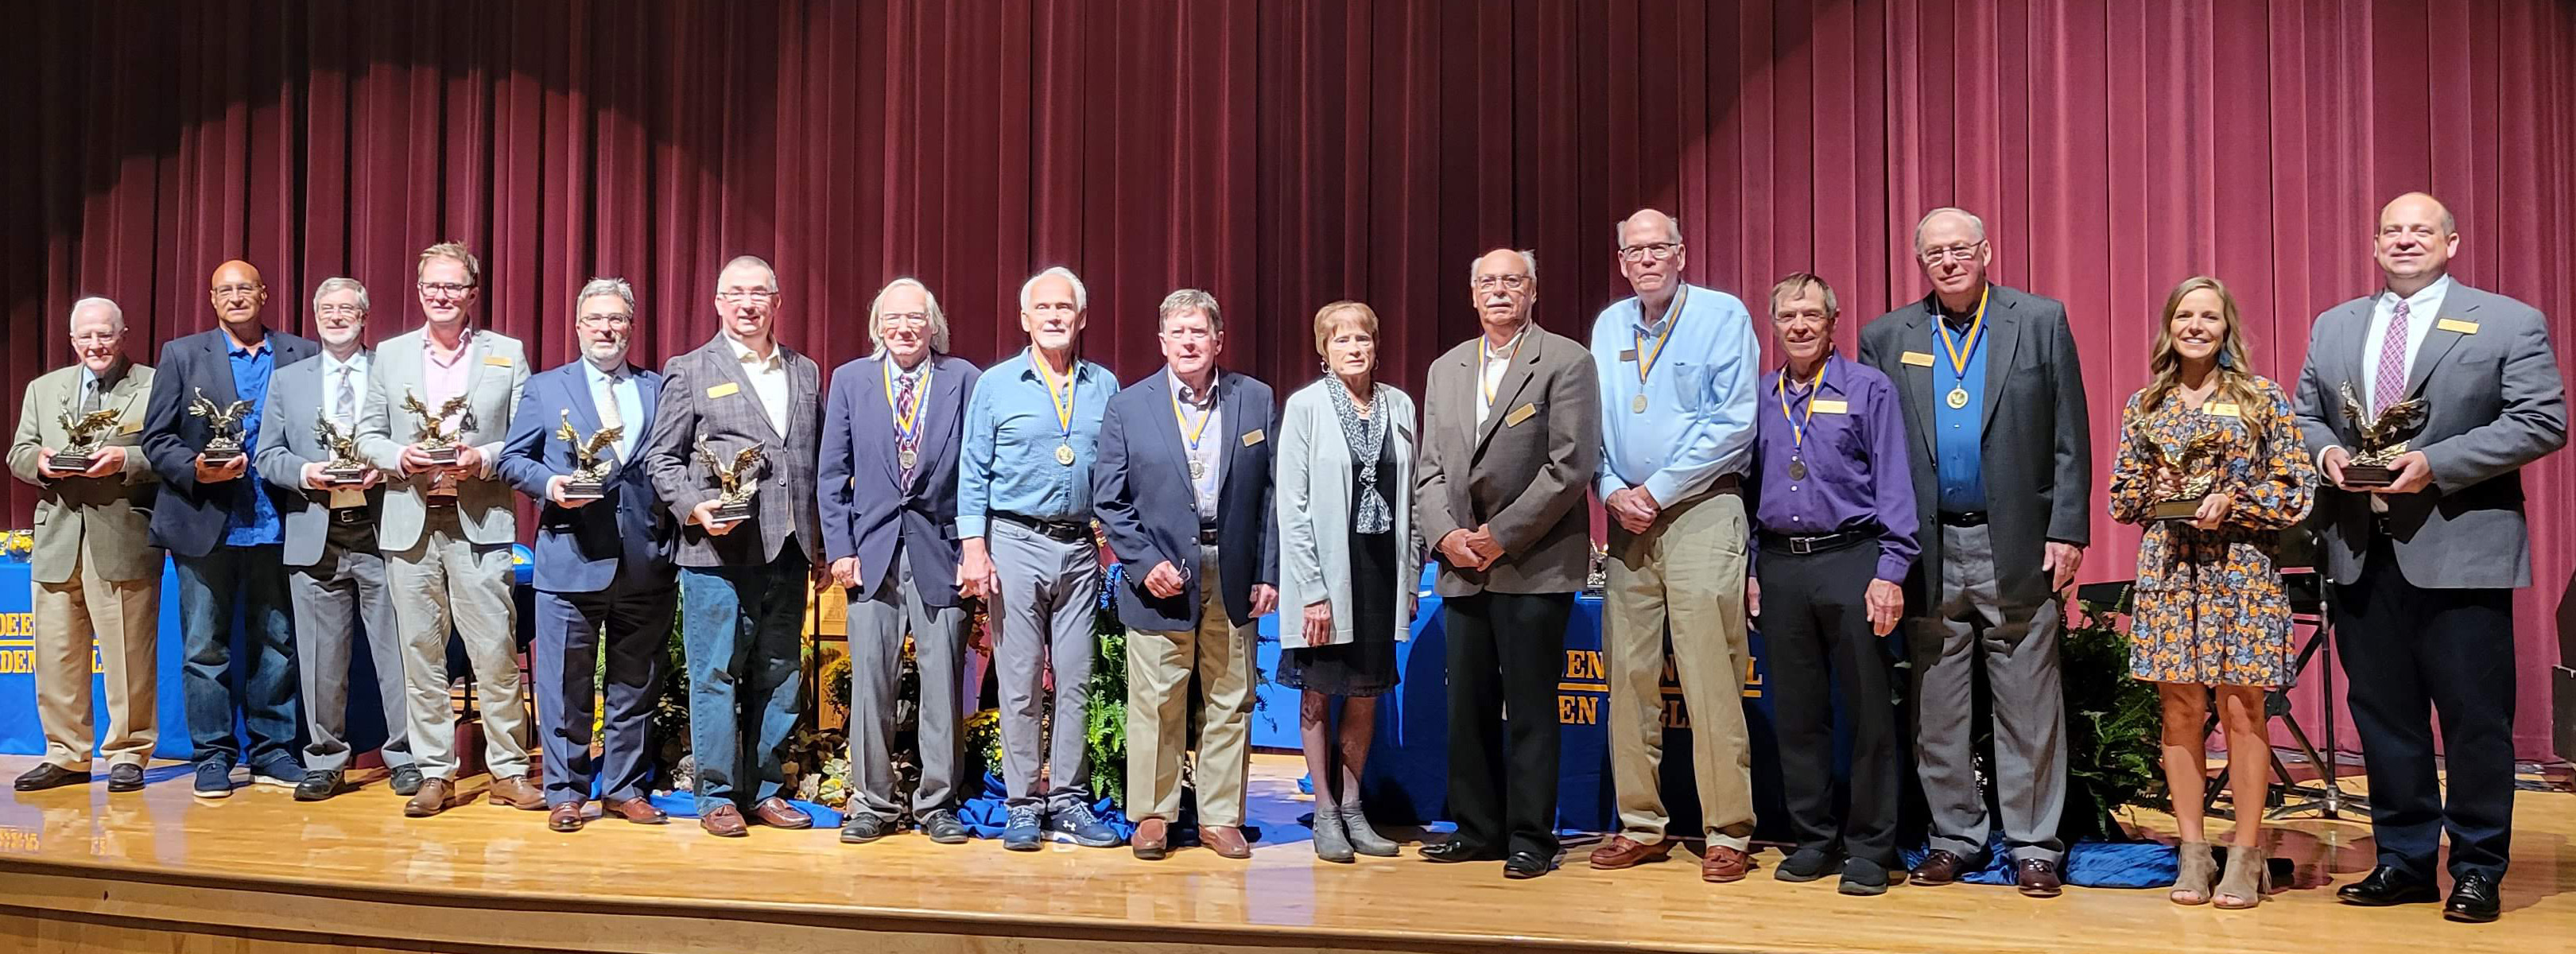 2021 Aberdeen Central High School Hall of Fame Inductees